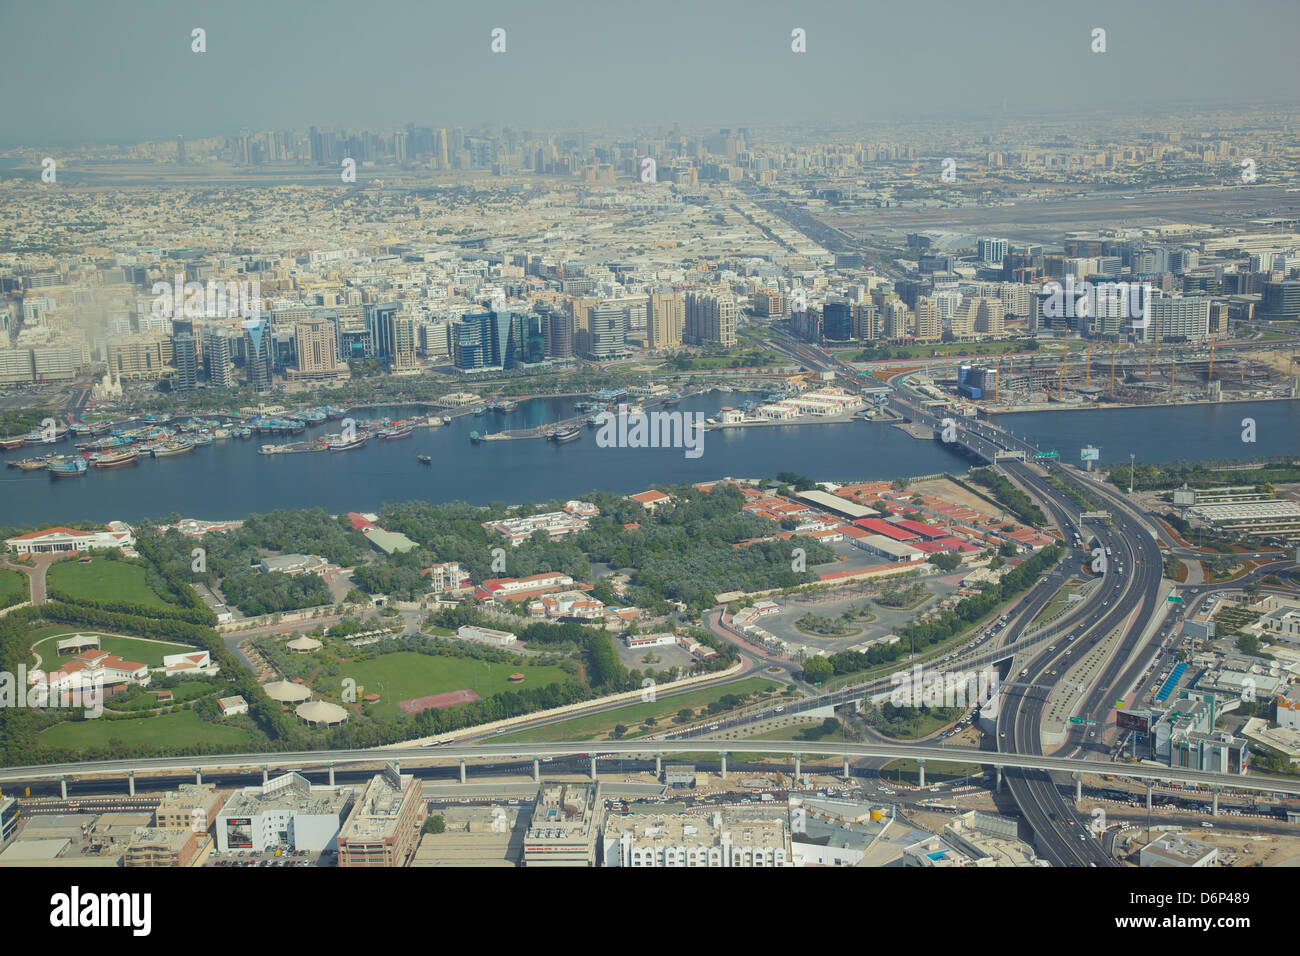 View of The Creek from seaplane. Dubai, United Arab Emirates, Middle East - Stock Image